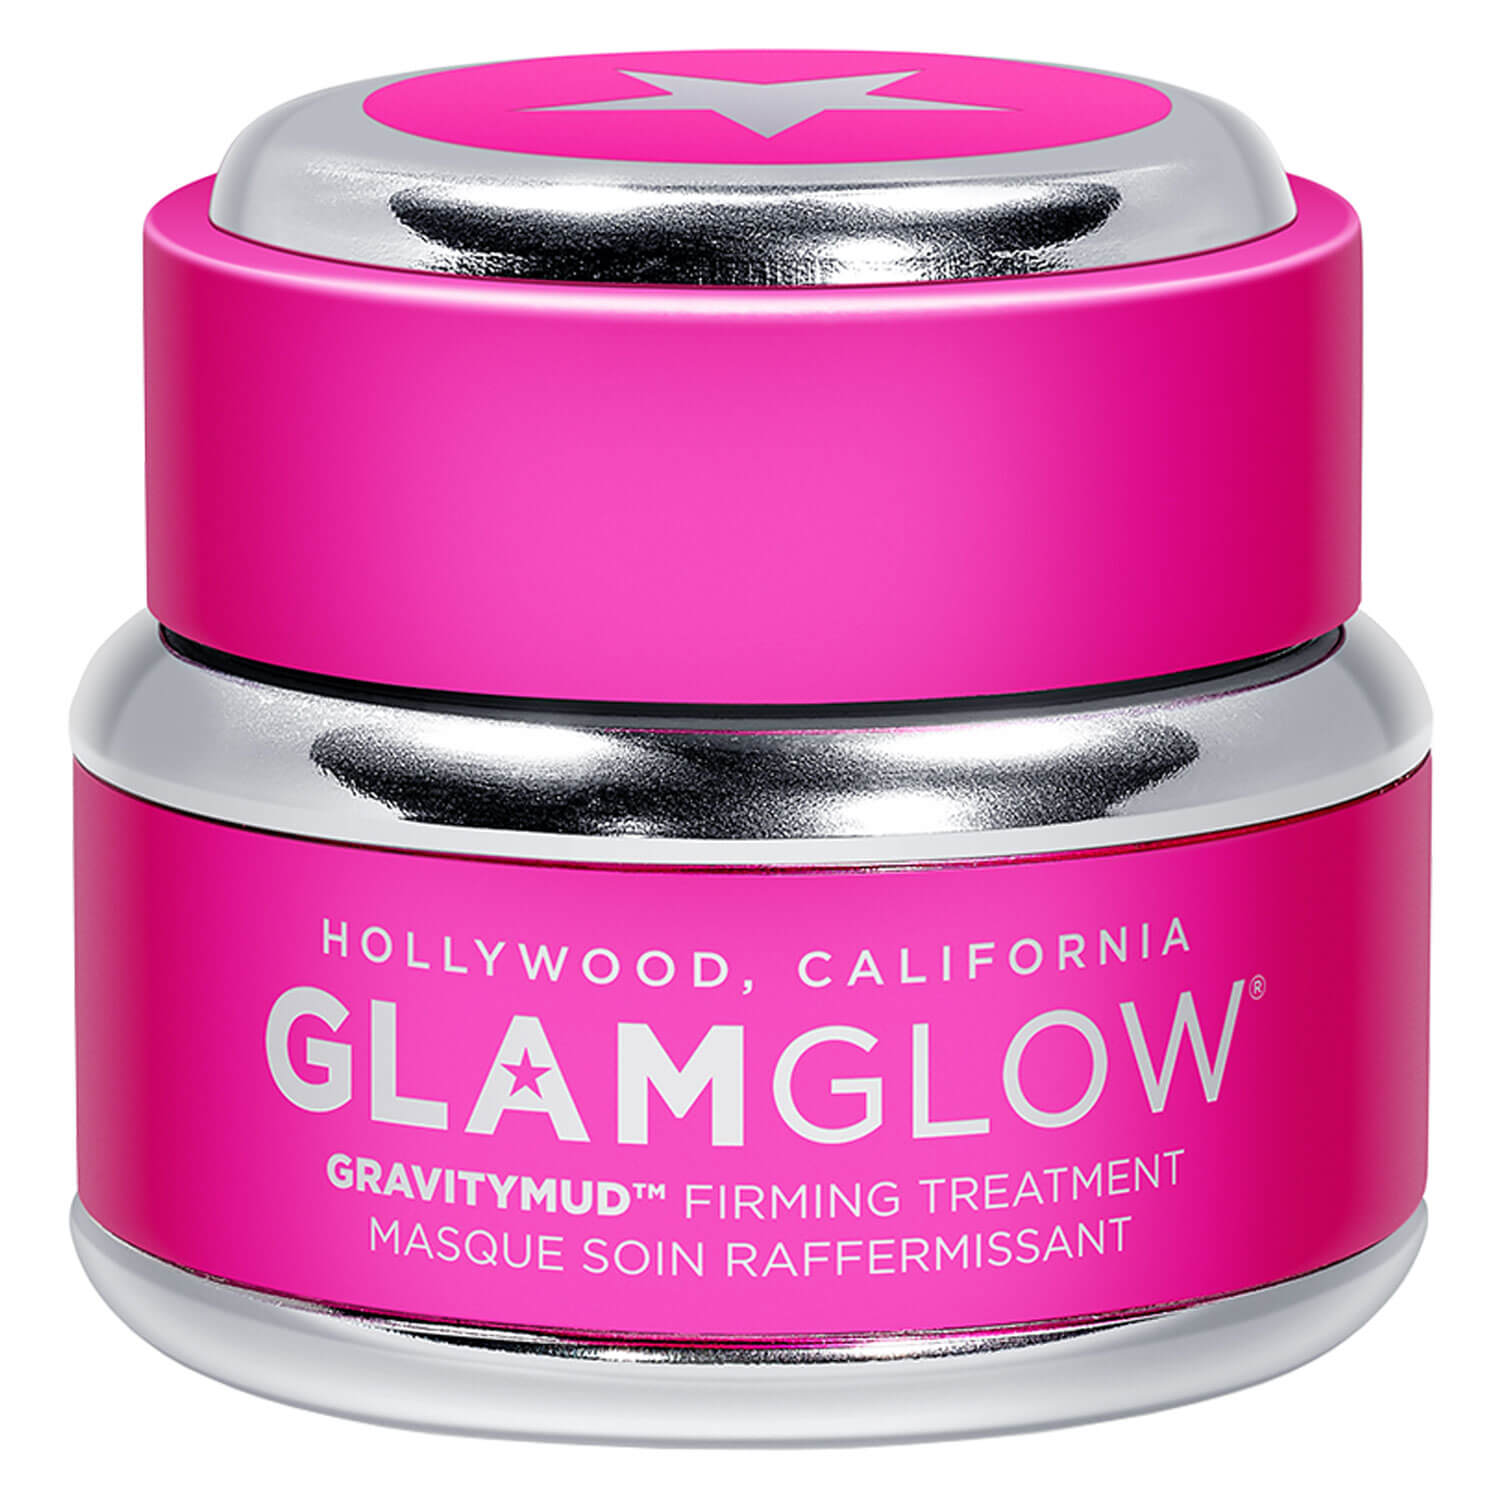 GlamGlow Mask - GRAVITYMUD Firming Treatment Pink Limited Edition